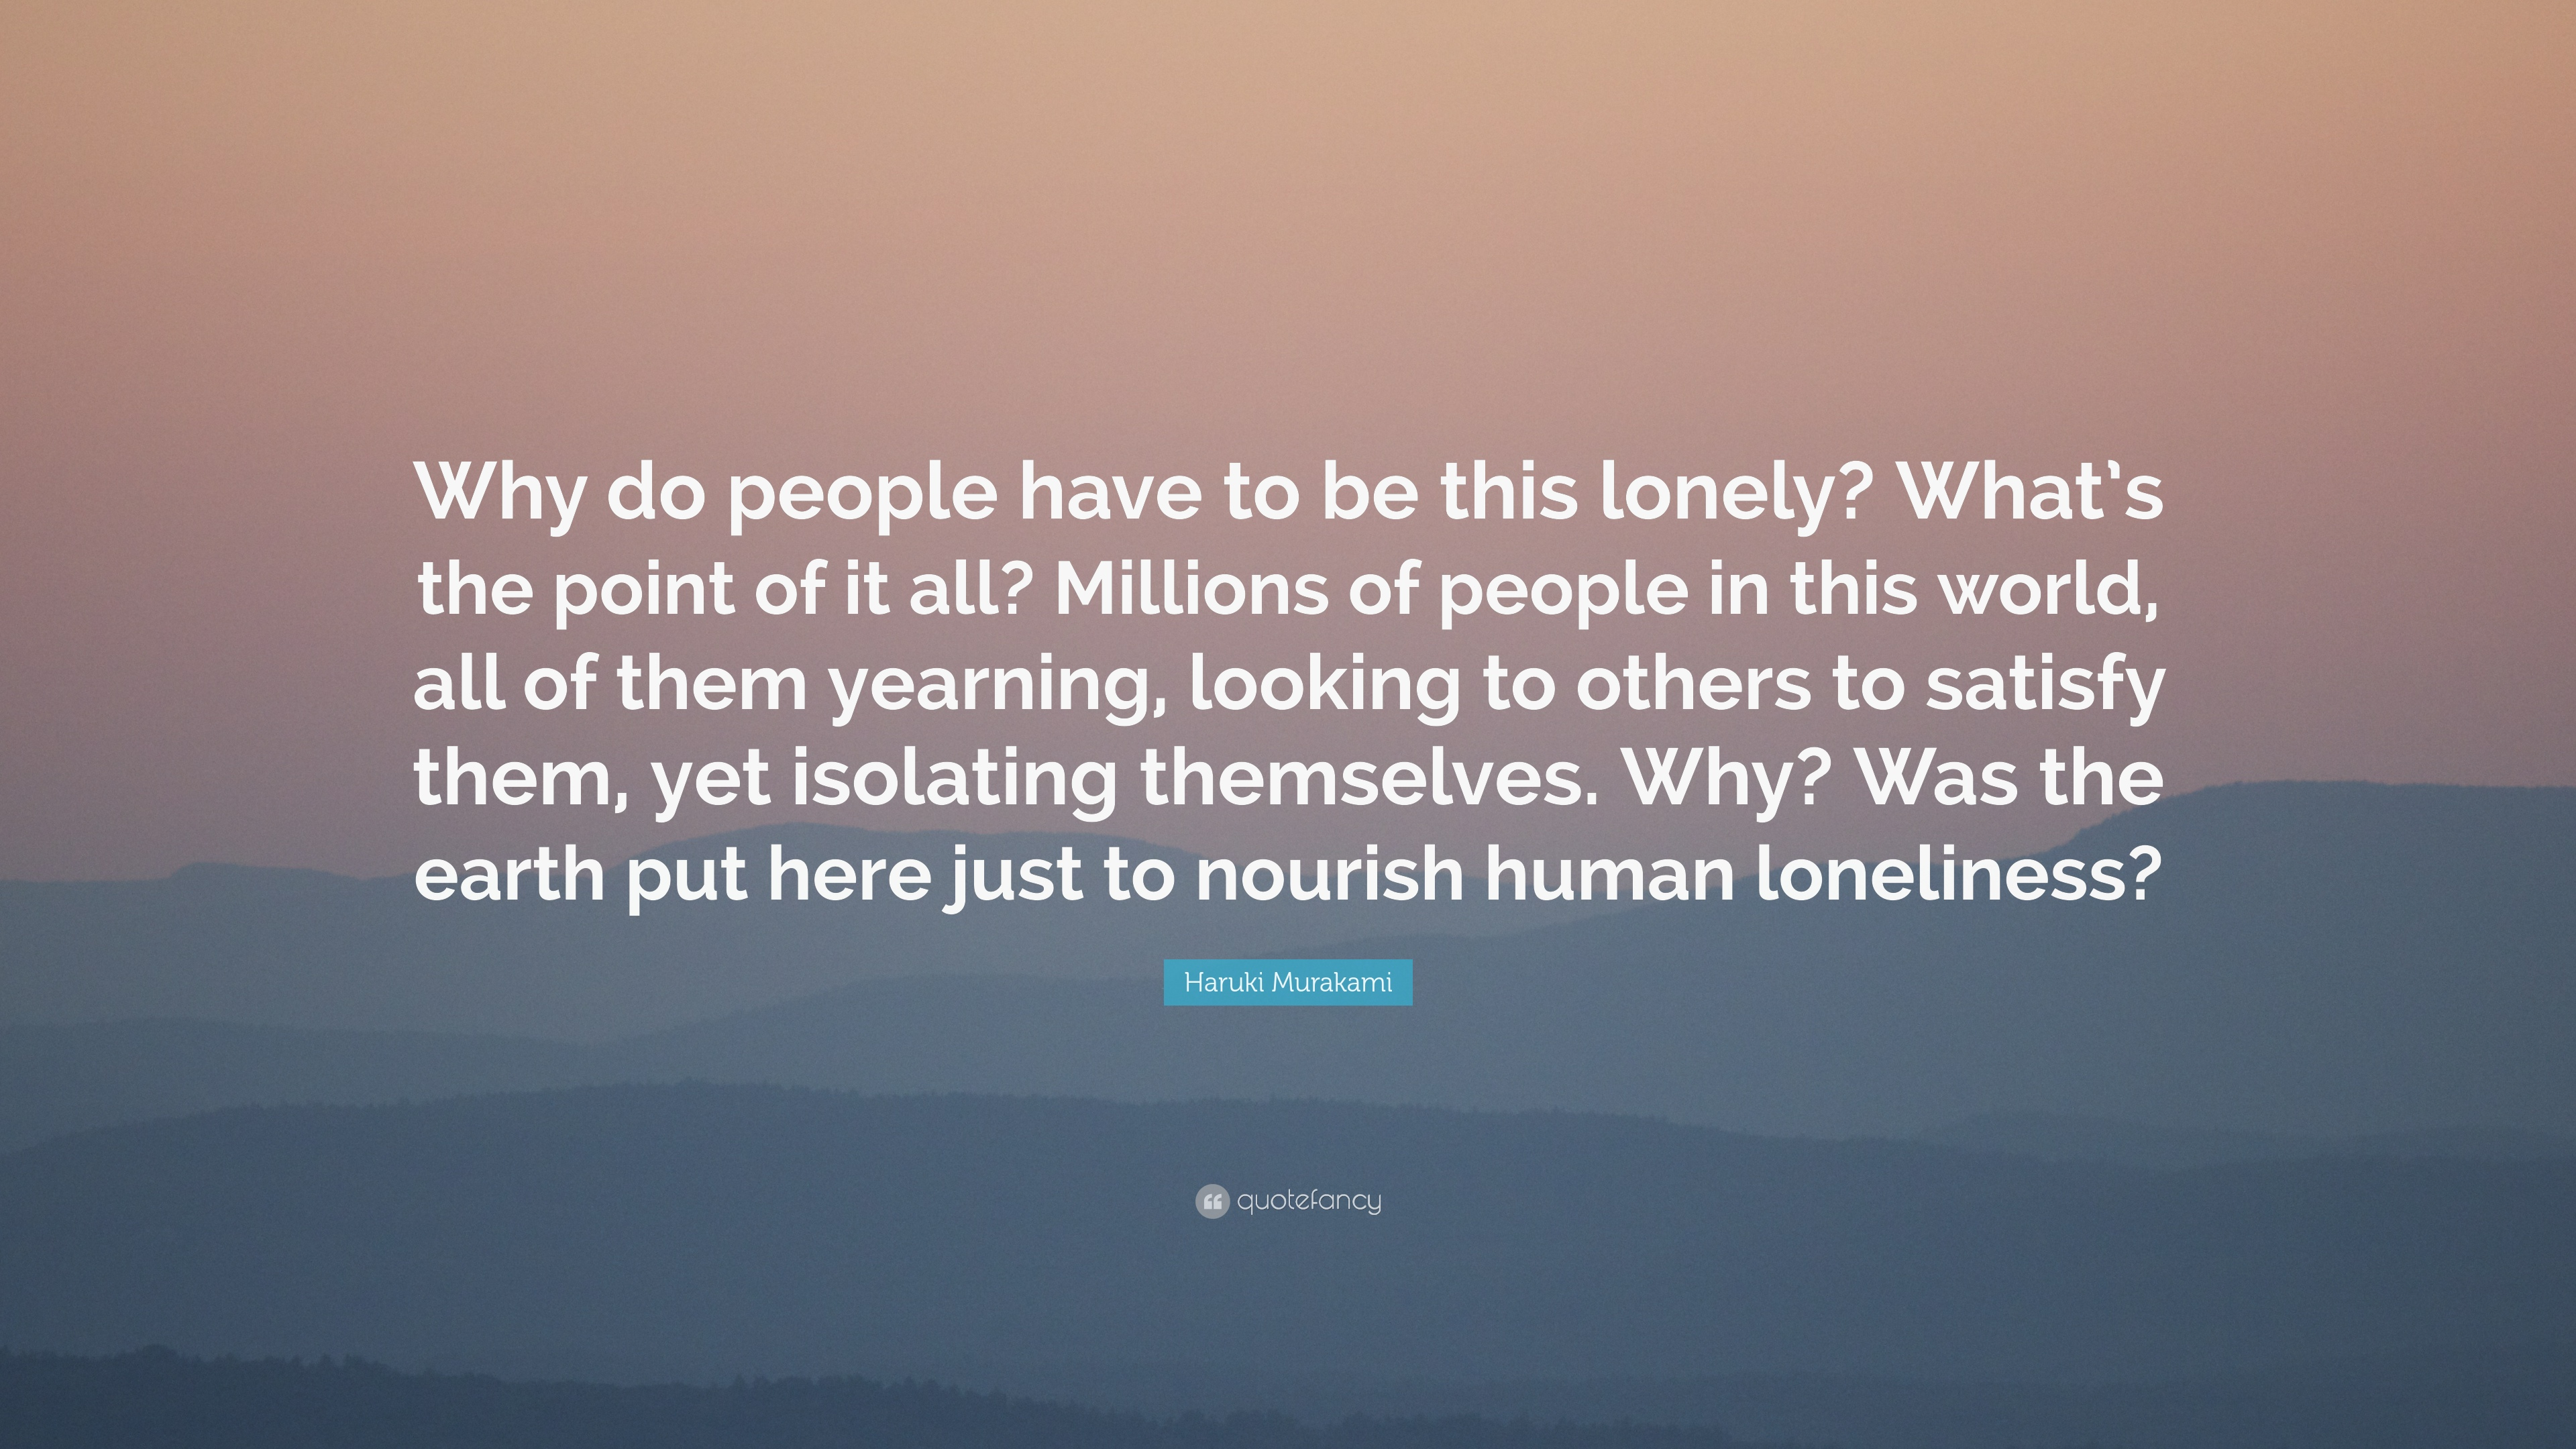 Lonely Quotes (40 wallpapers) - Quotefancy